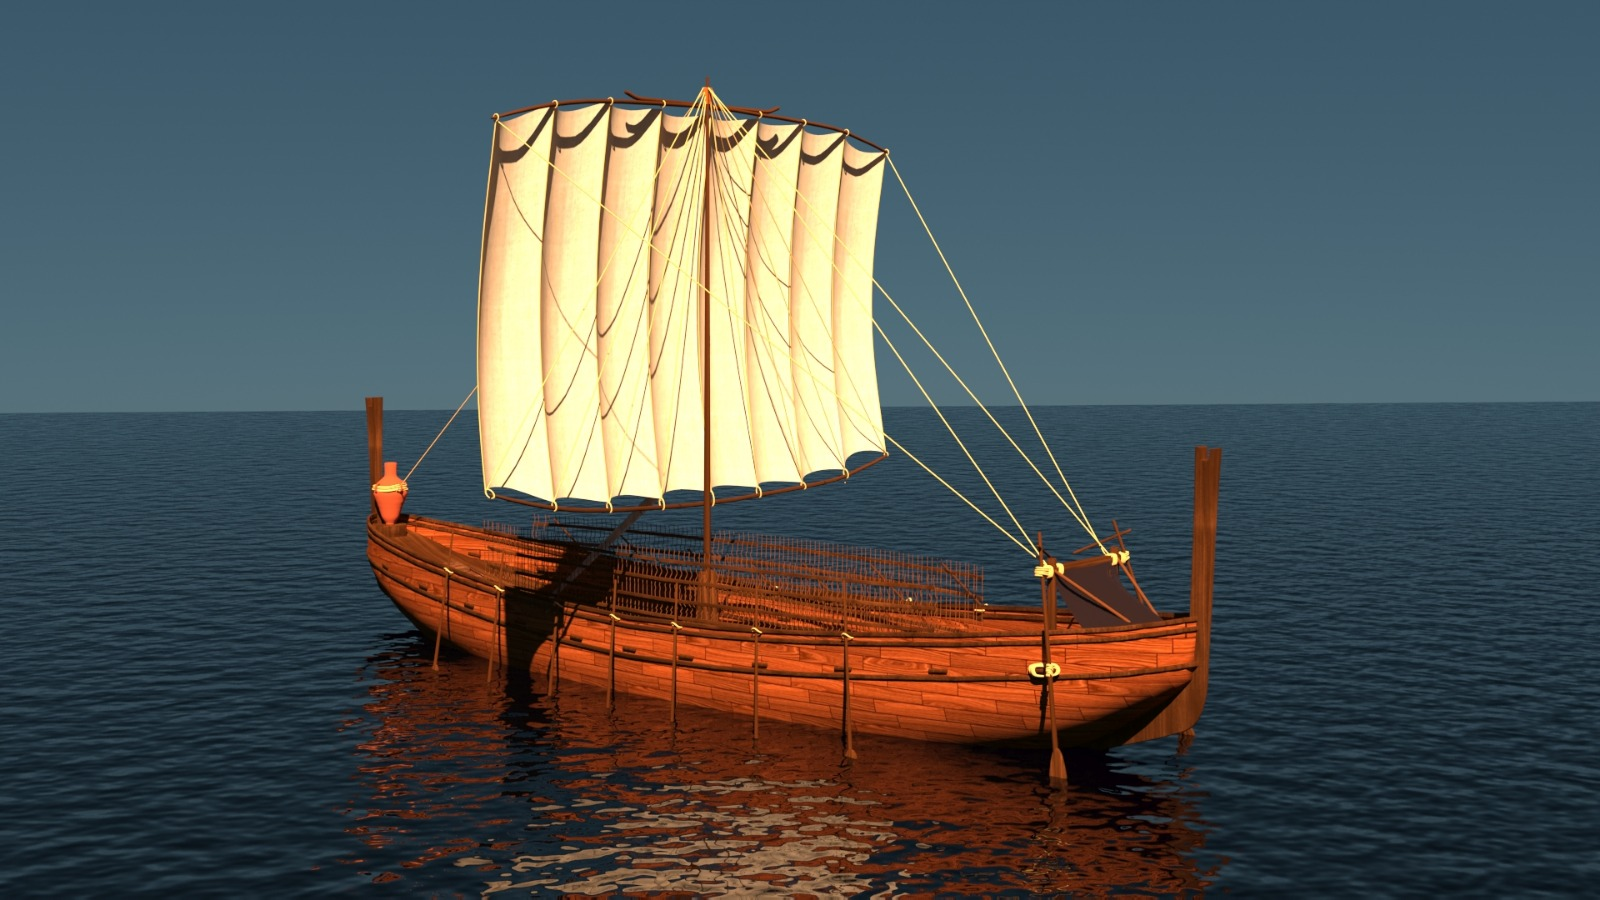 3D model of an Ancient Phoenician Trading Vessel Likely Similar to the Western Antalya Wreck  Credit: Aysenur Toksöz, Archeology Master's Student with Akdeniz University, Turkey